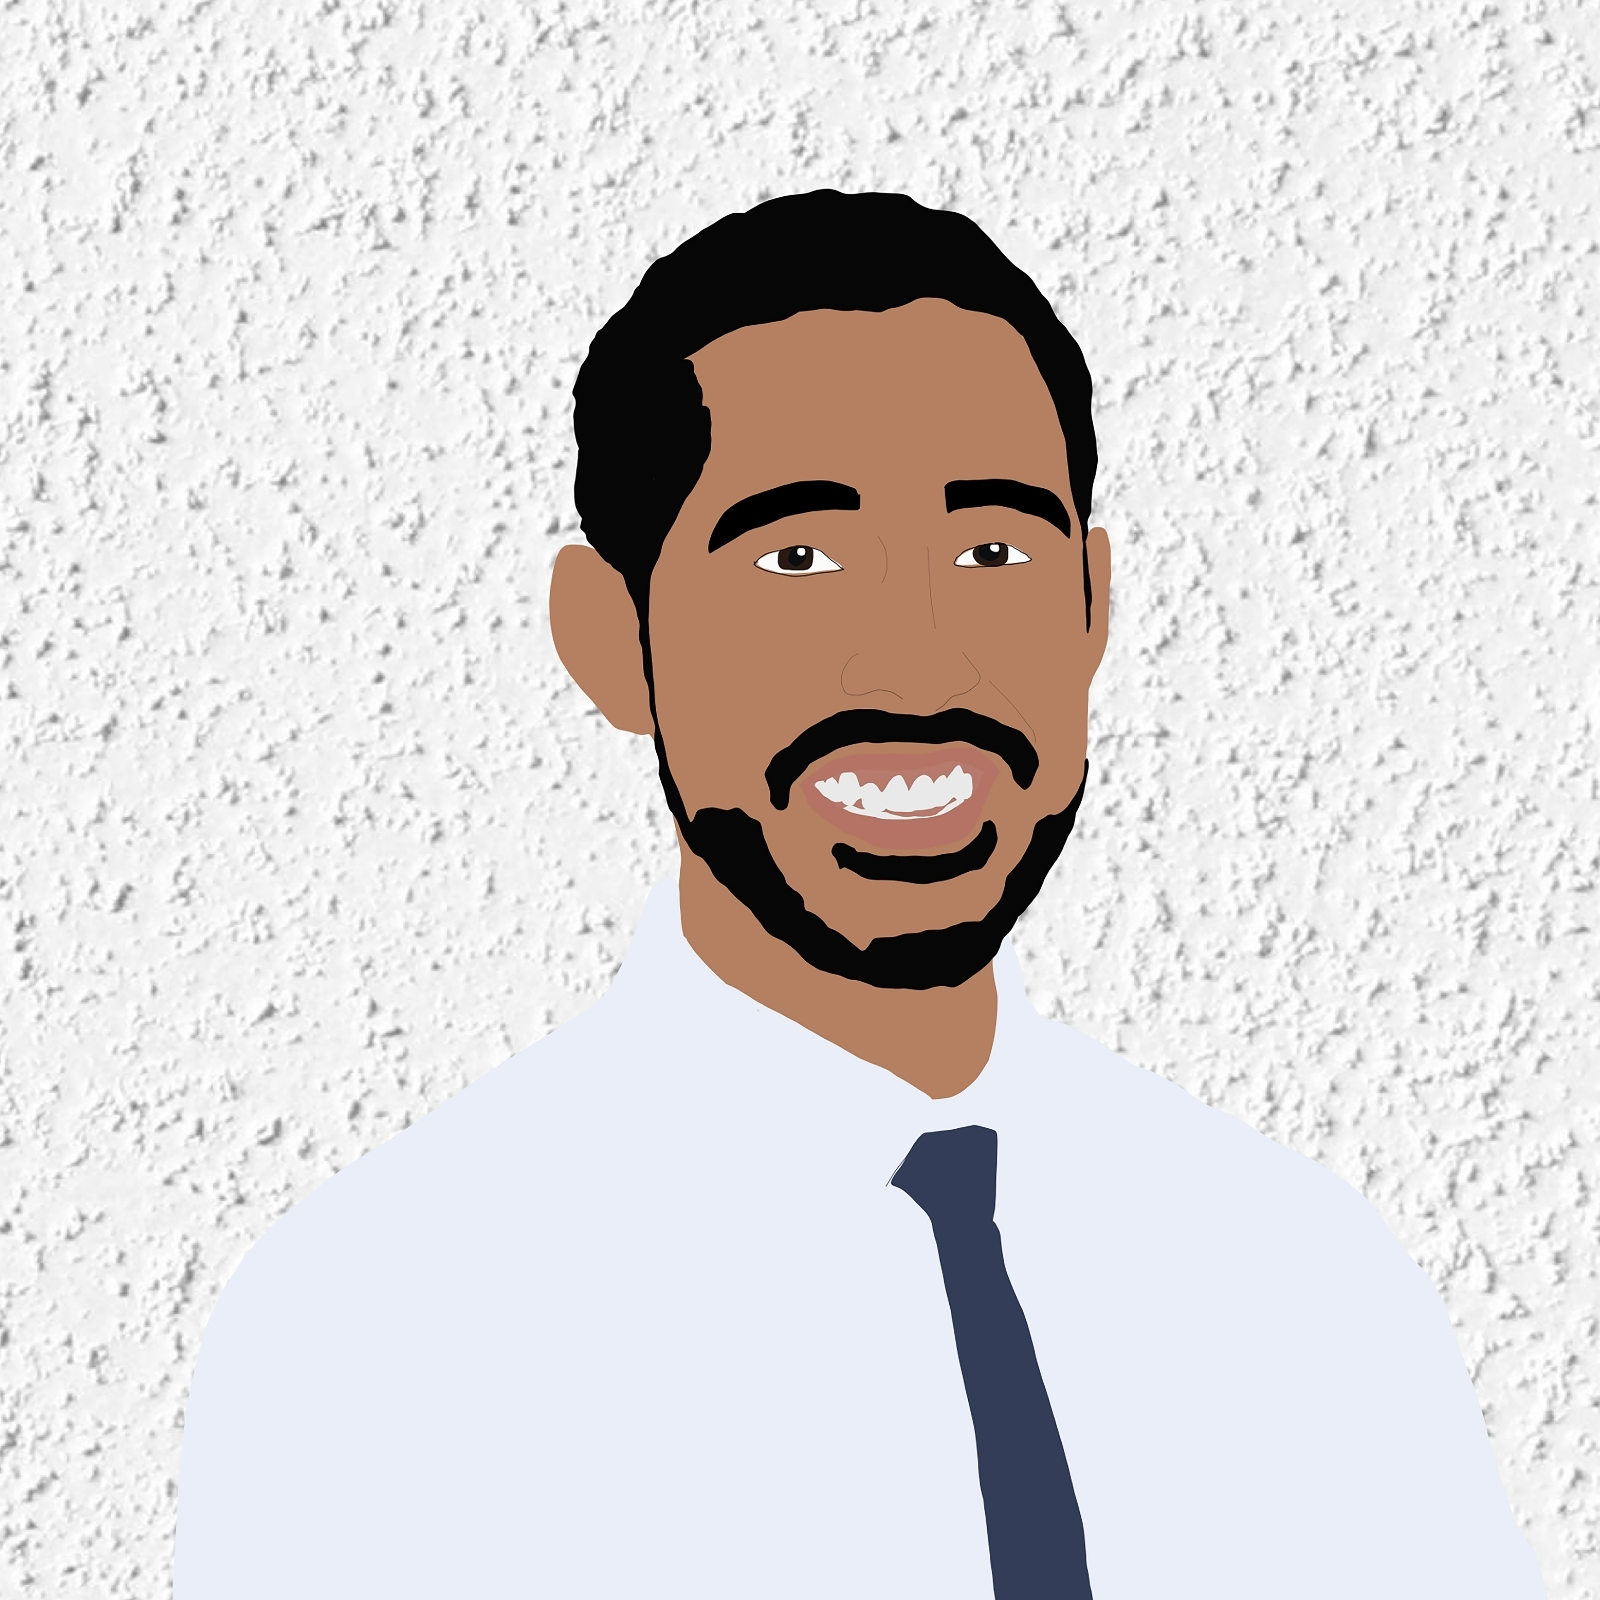 Digital illustration of Sergio smiling against a white stucco background.